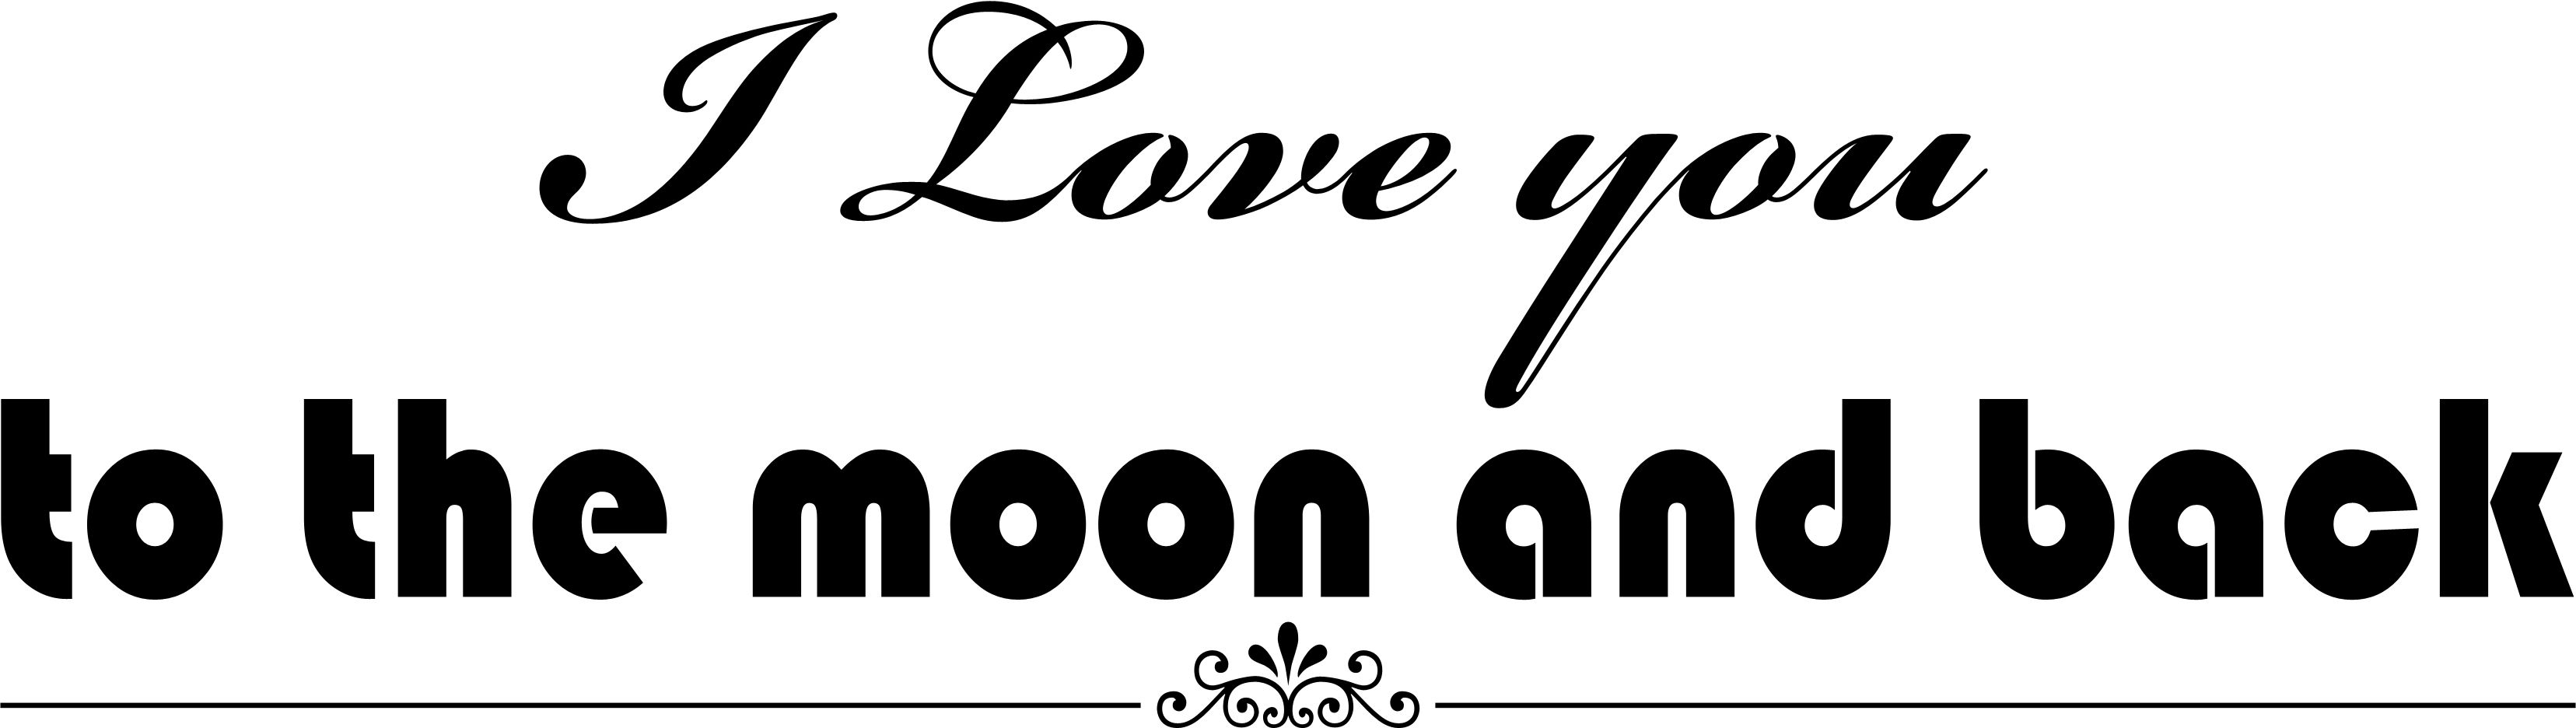 Pin By Photos Are Us On I Love You To The Moon Back Love